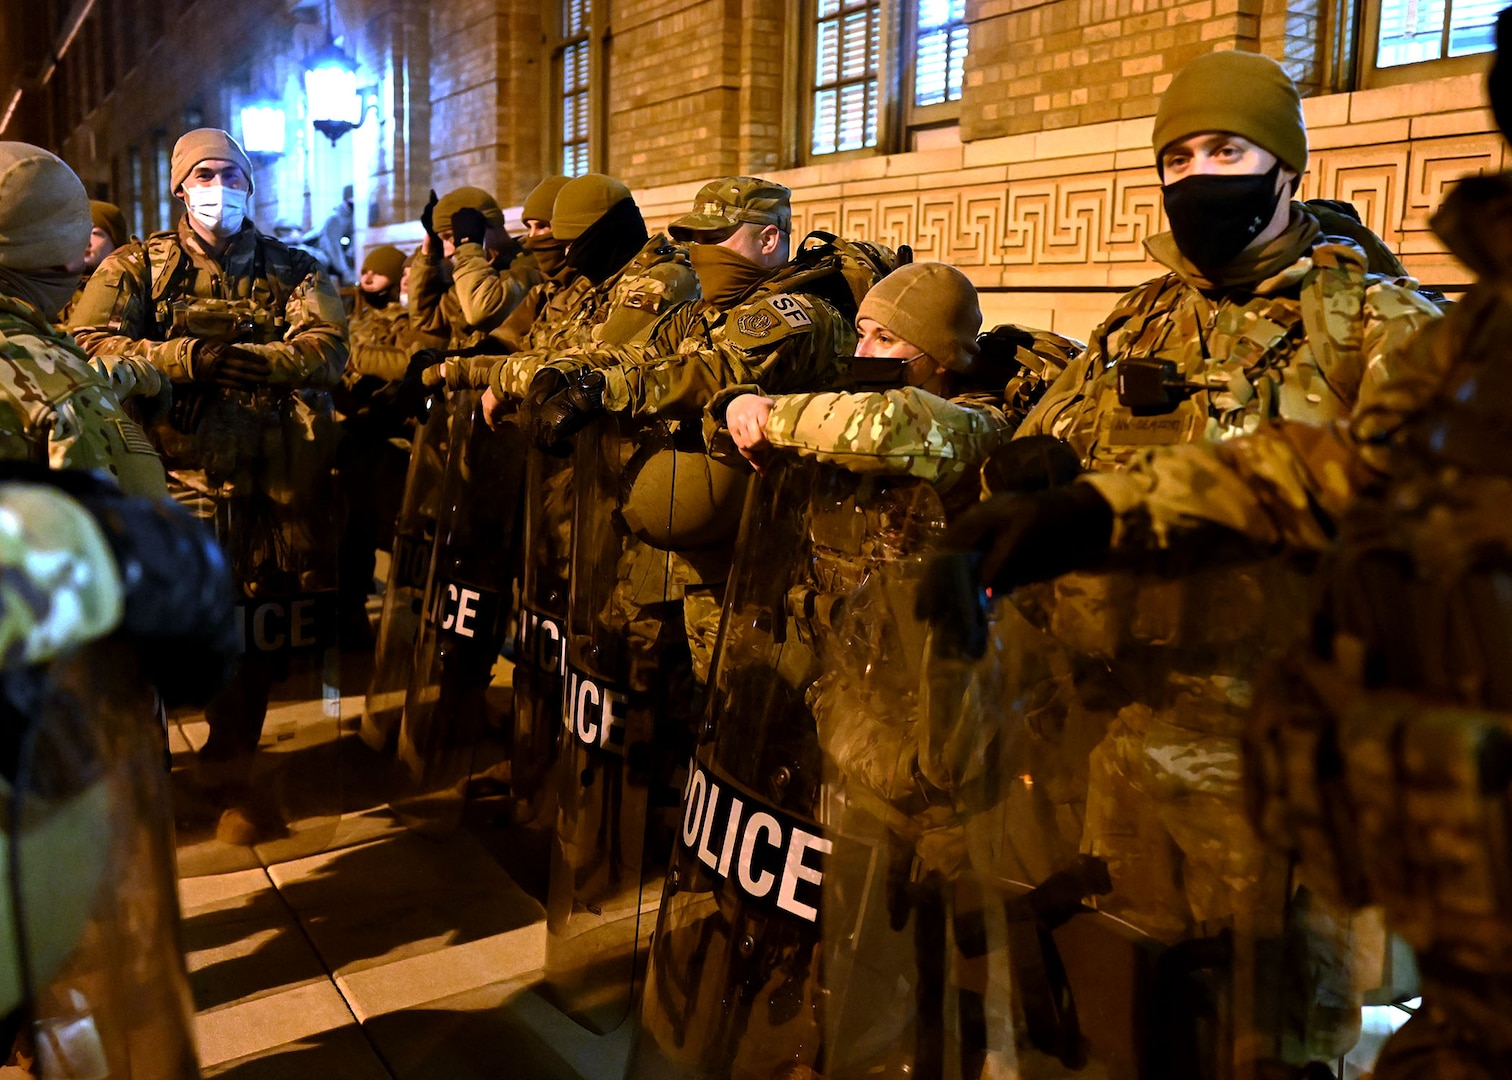 Airmen of the 157th Security Forces Squadron stage in the streets of the National Capital Region Jan. 20, 2021